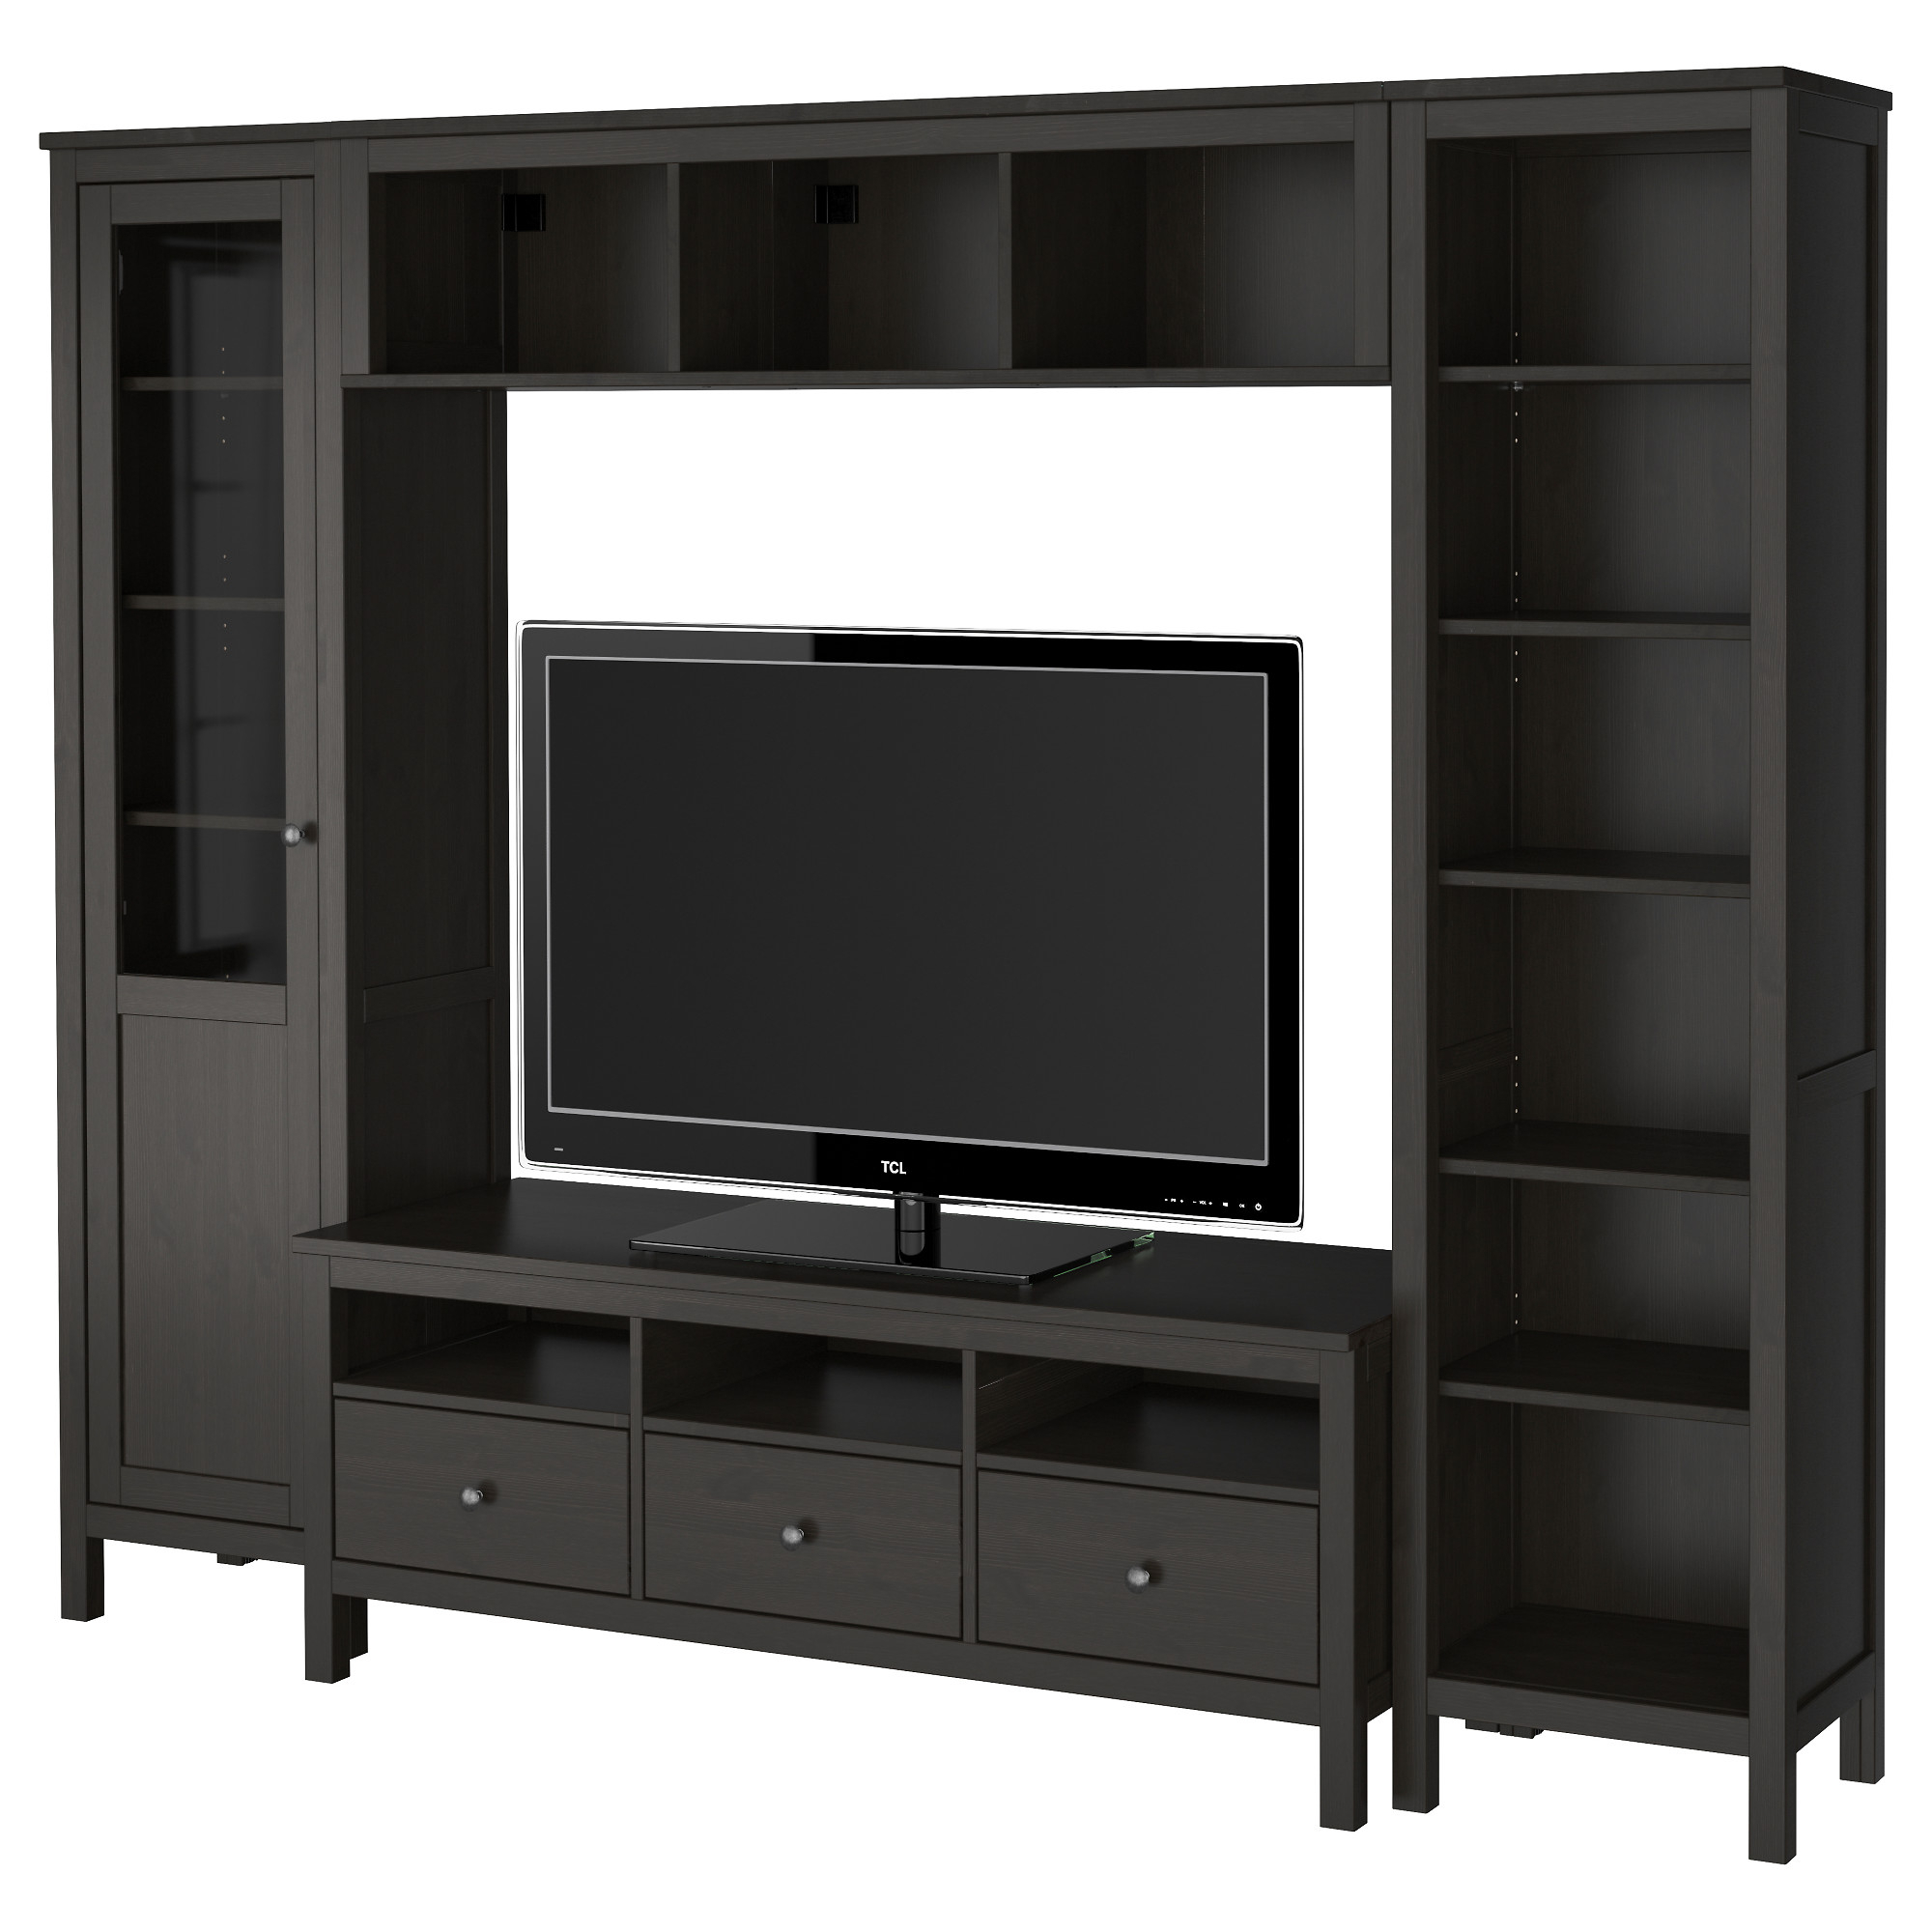 Tv Armoire For Flat Screens Ikea 70 Inch Stand 75 With Mount Best regarding Oxford 70 Inch Tv Stands (Image 23 of 30)